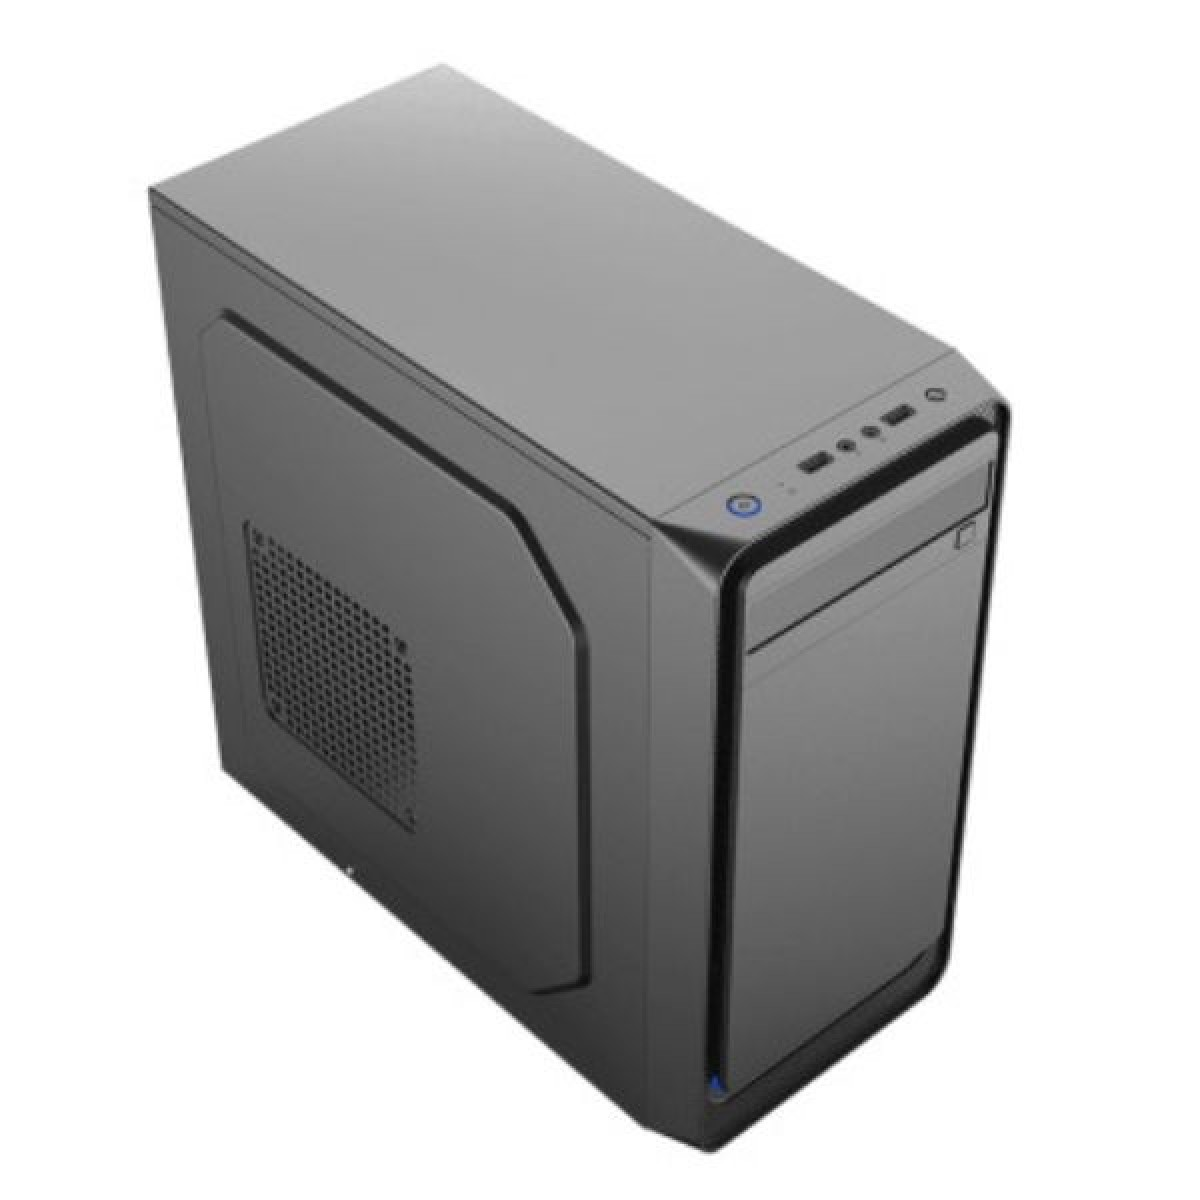 Gabinete Gamemax 6503BK, Micro Tower, Black, Com fonte, Sem Fan